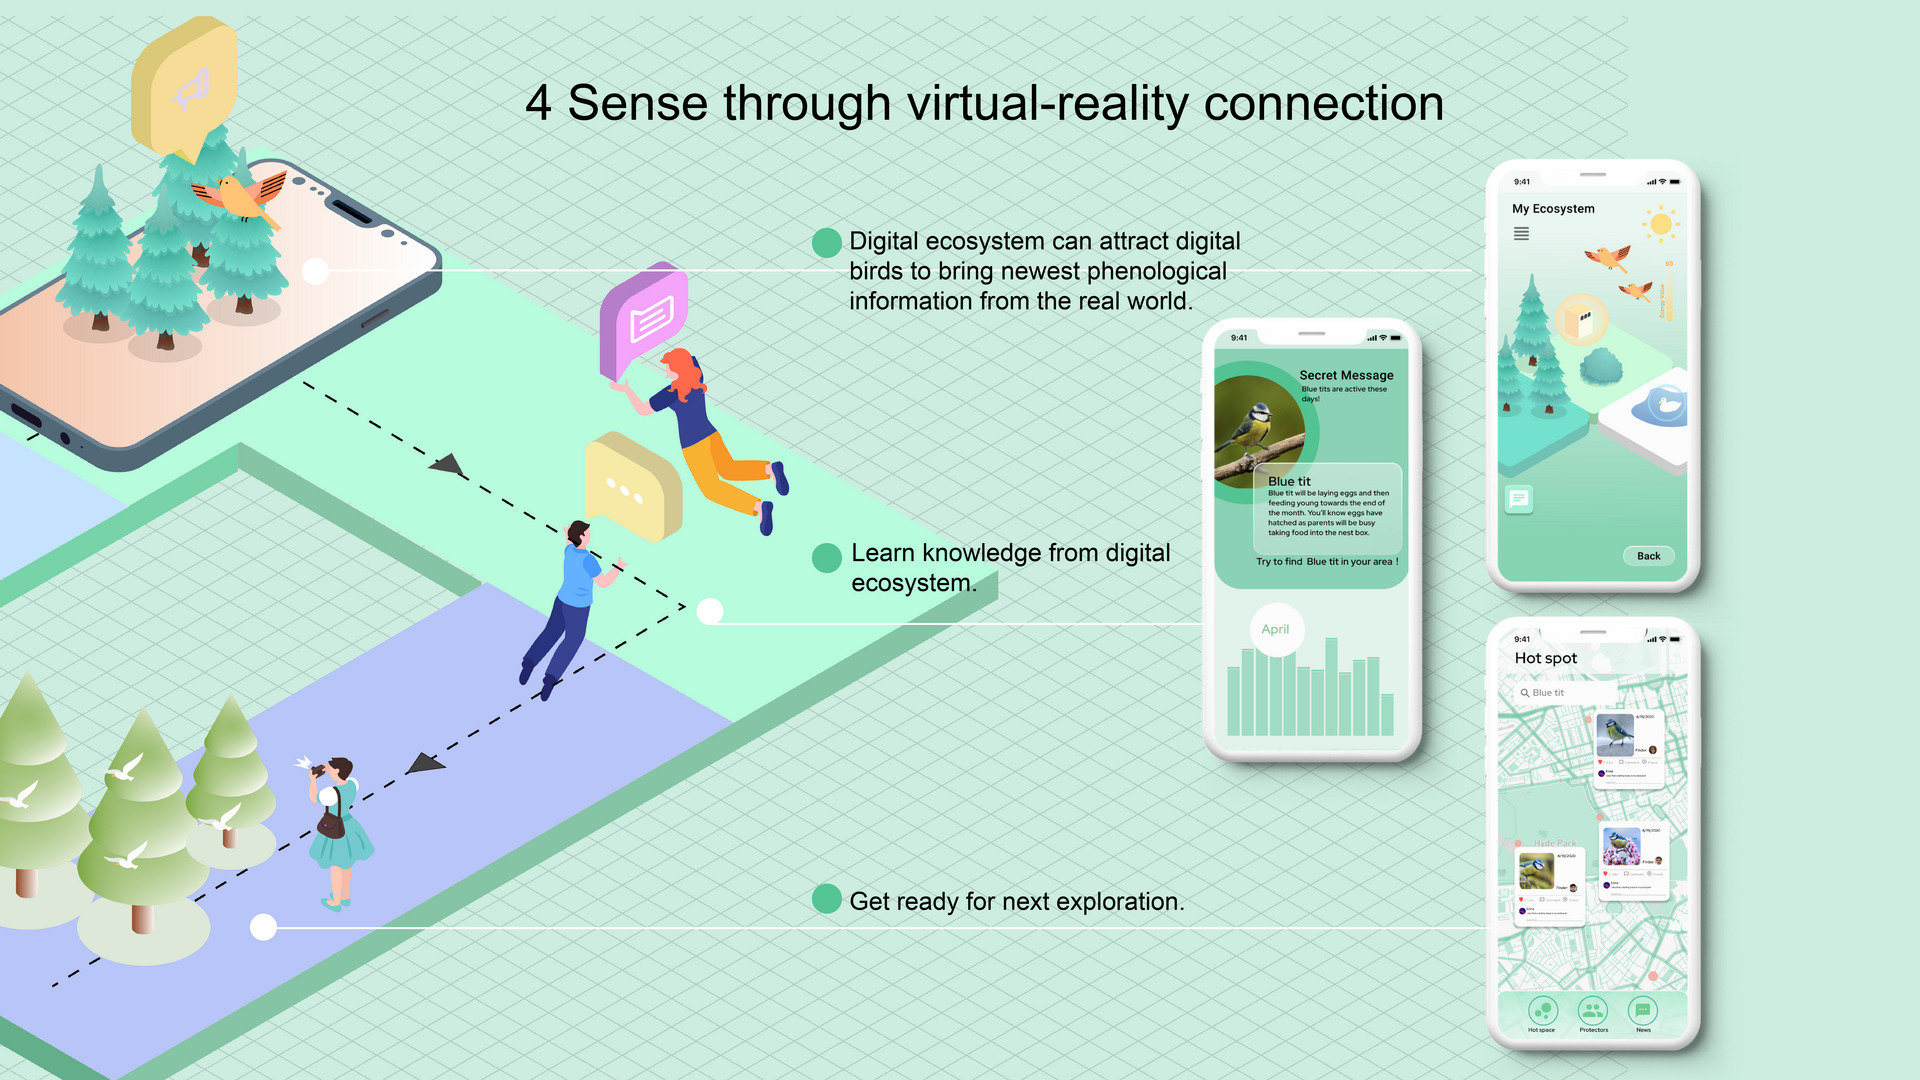 Step4: Connect with real world through digital interactions